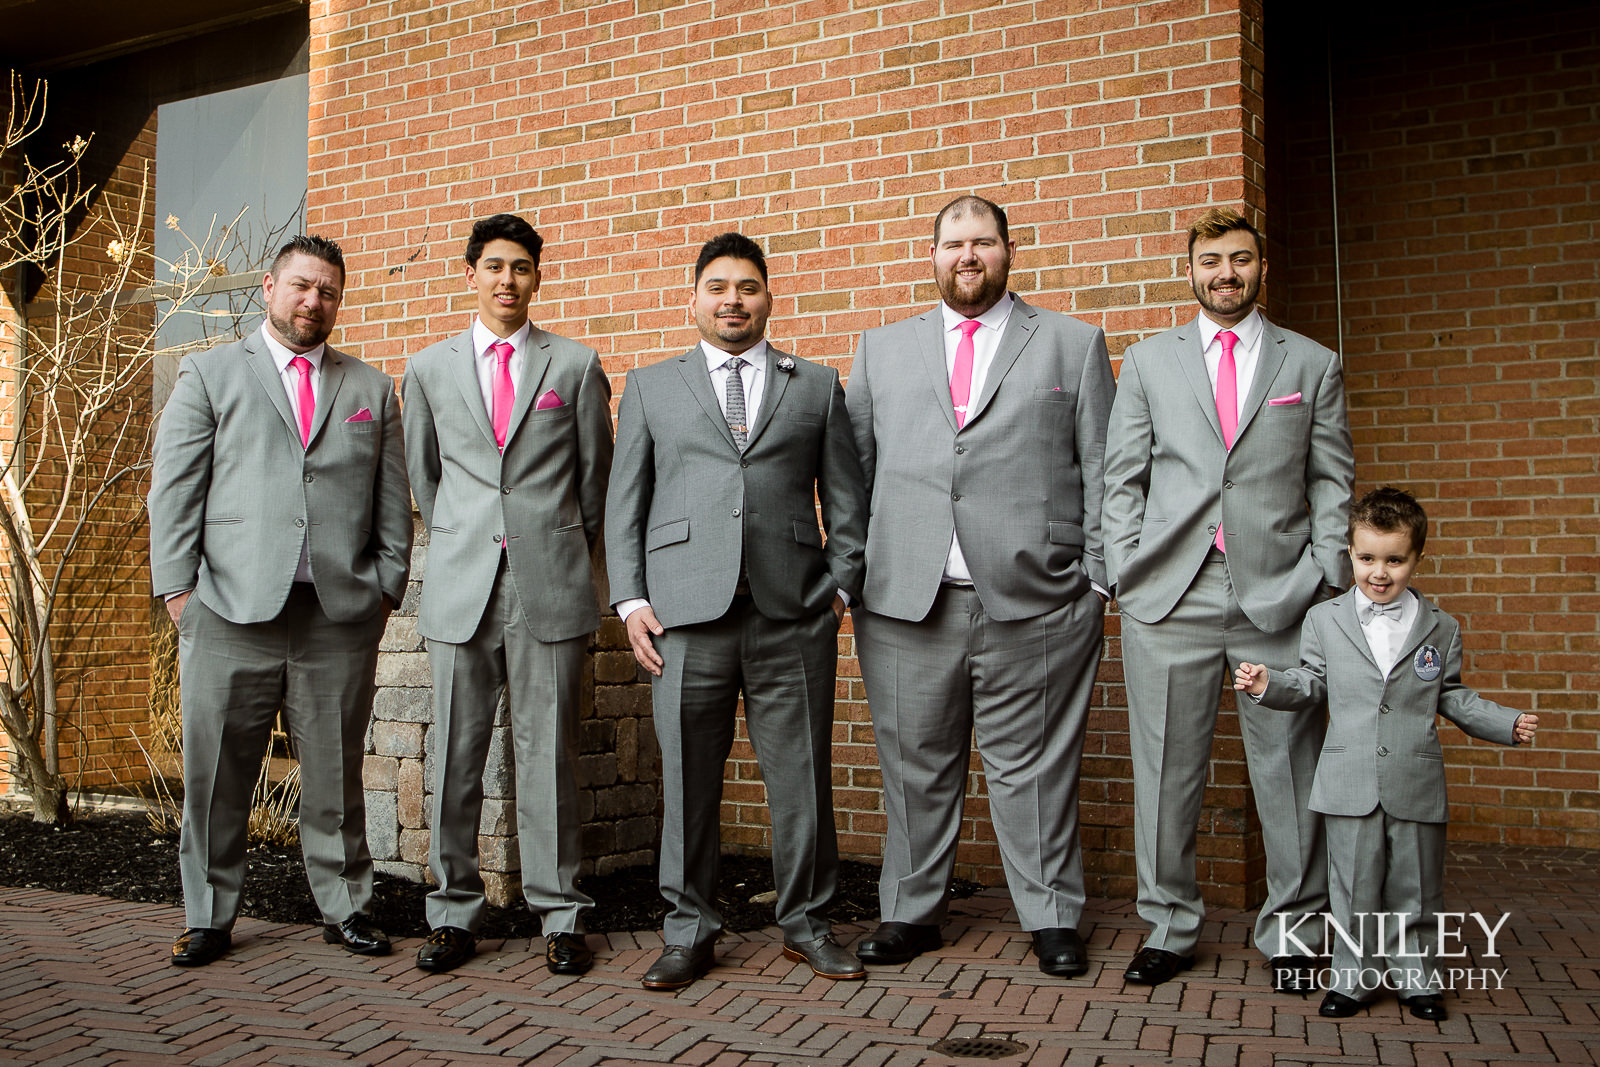 018 - Woodcliff Hotel - Rochester NY wedding photo - Kniley Photography.jpg